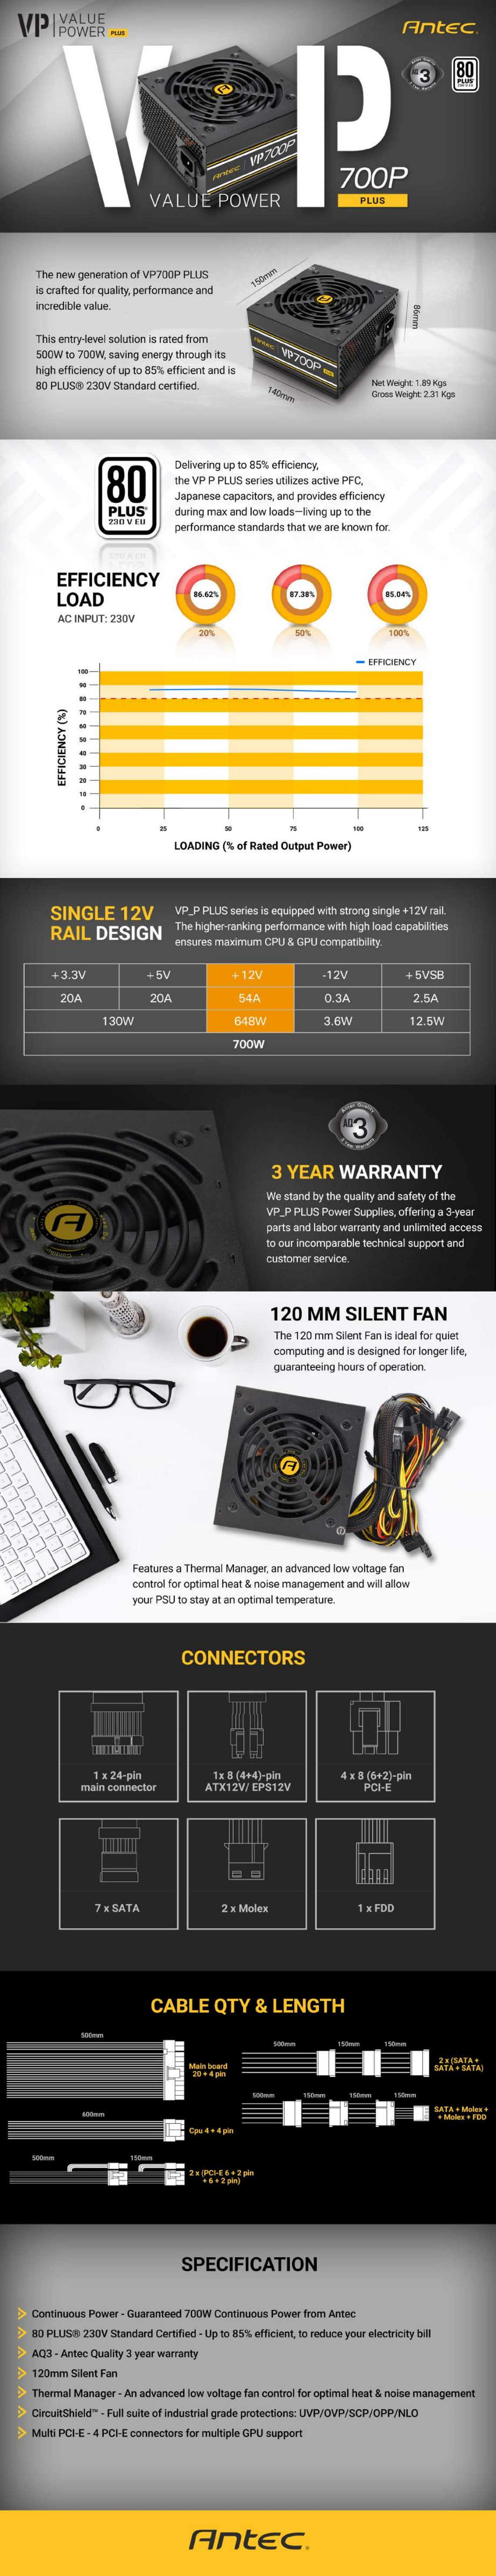 Antec VP700 PLUS 700w PSU 120mm Silent Fan PLUS 2019 version MEPS Compliant